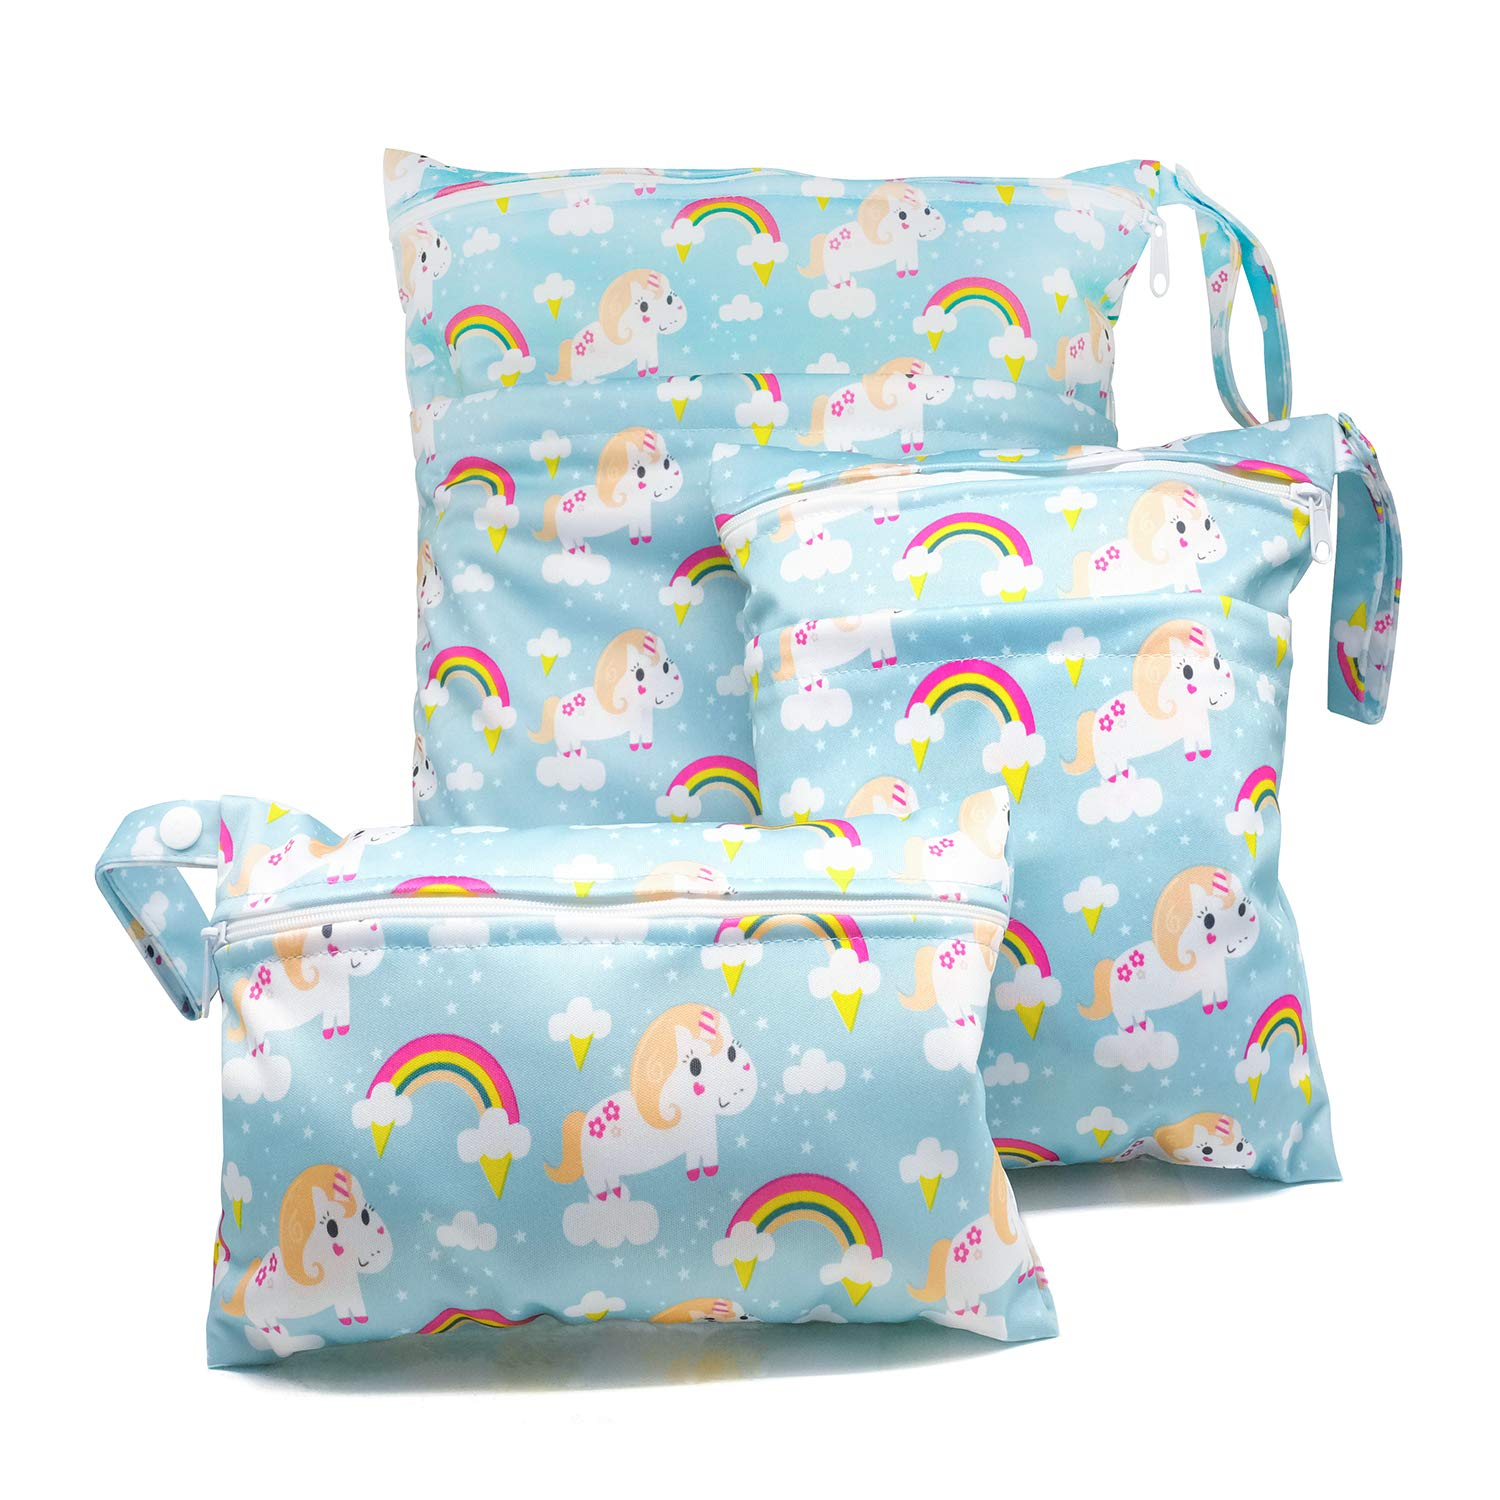 Baby Cloth Diaper Wet Dry Bags Sets Waterproof Diaper Organizer with Two Pockets 3PCS